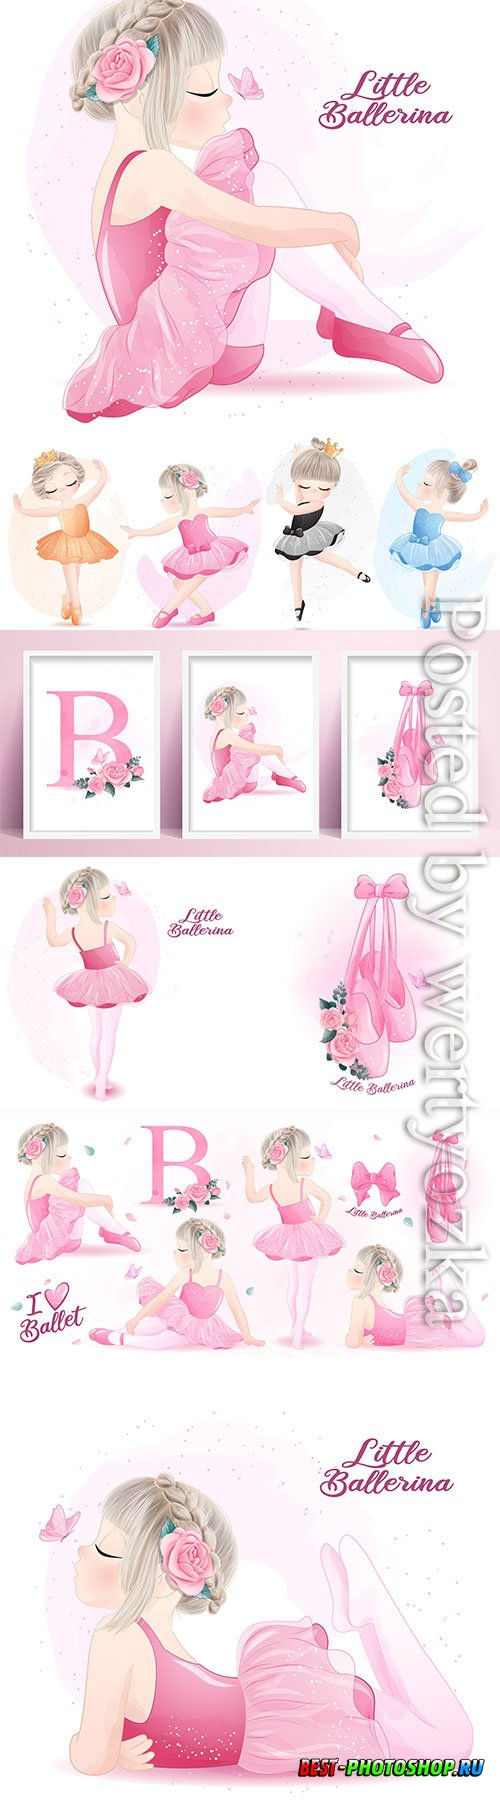 Cute girl ballerina watercolor illustration vector set